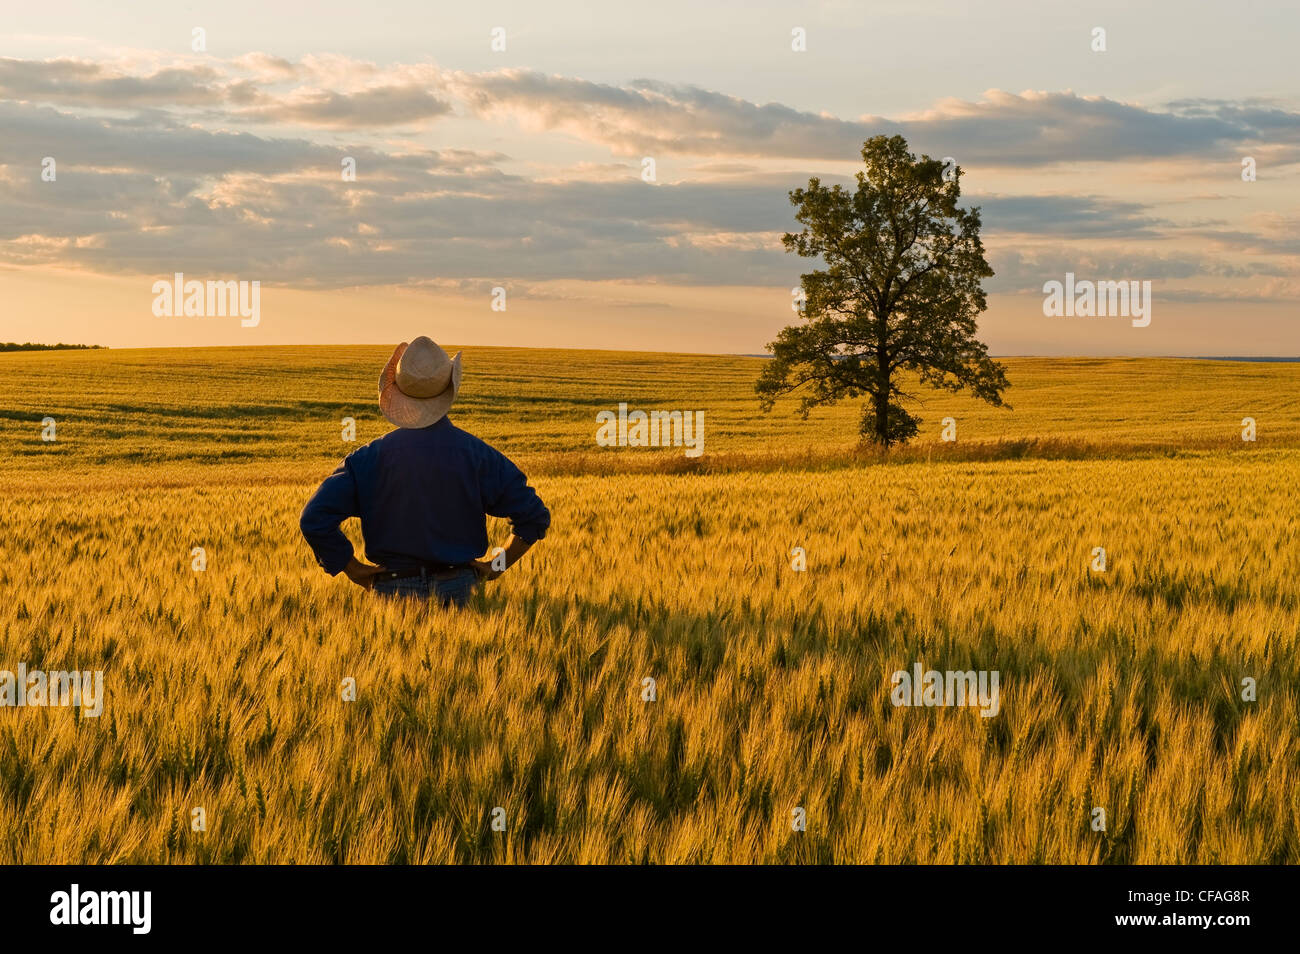 a man looks out over a field of maturing wheat near Holland, Manitoba, Canada - Stock Image